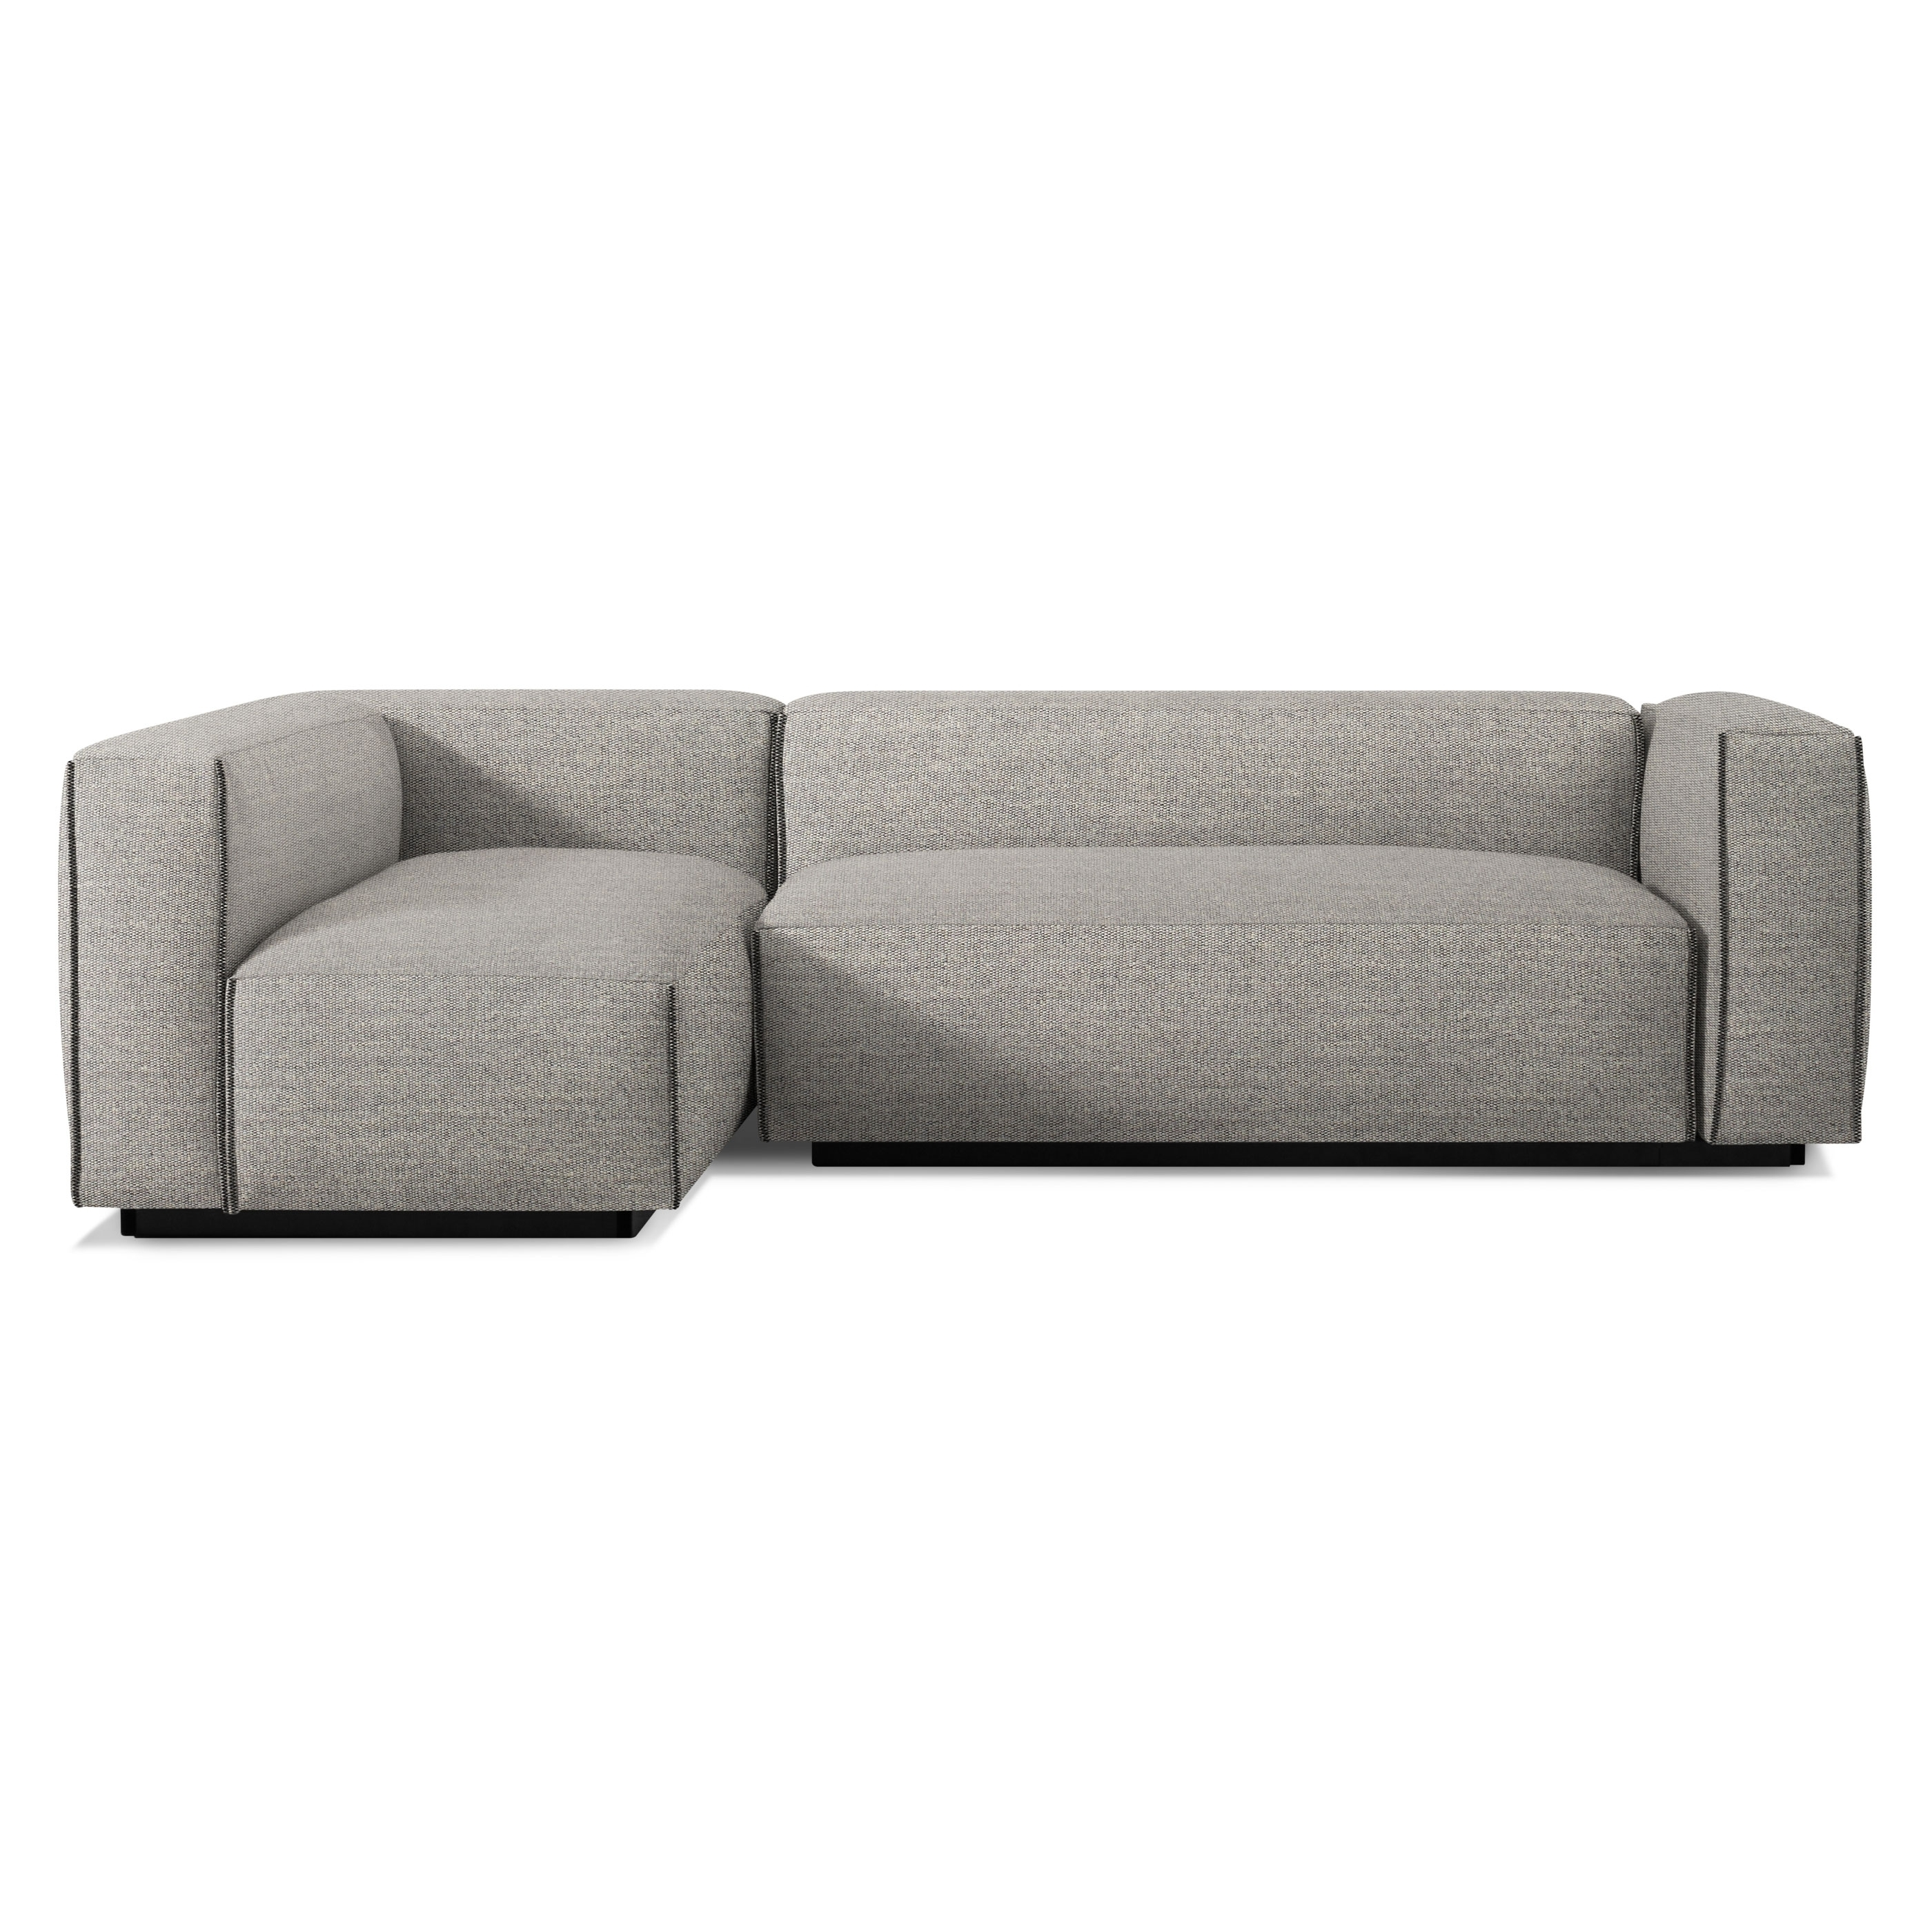 Sydney Sectional Sofas Within Favorite Small Sectional Sofa – Modern Sectional Sofas (View 17 of 20)